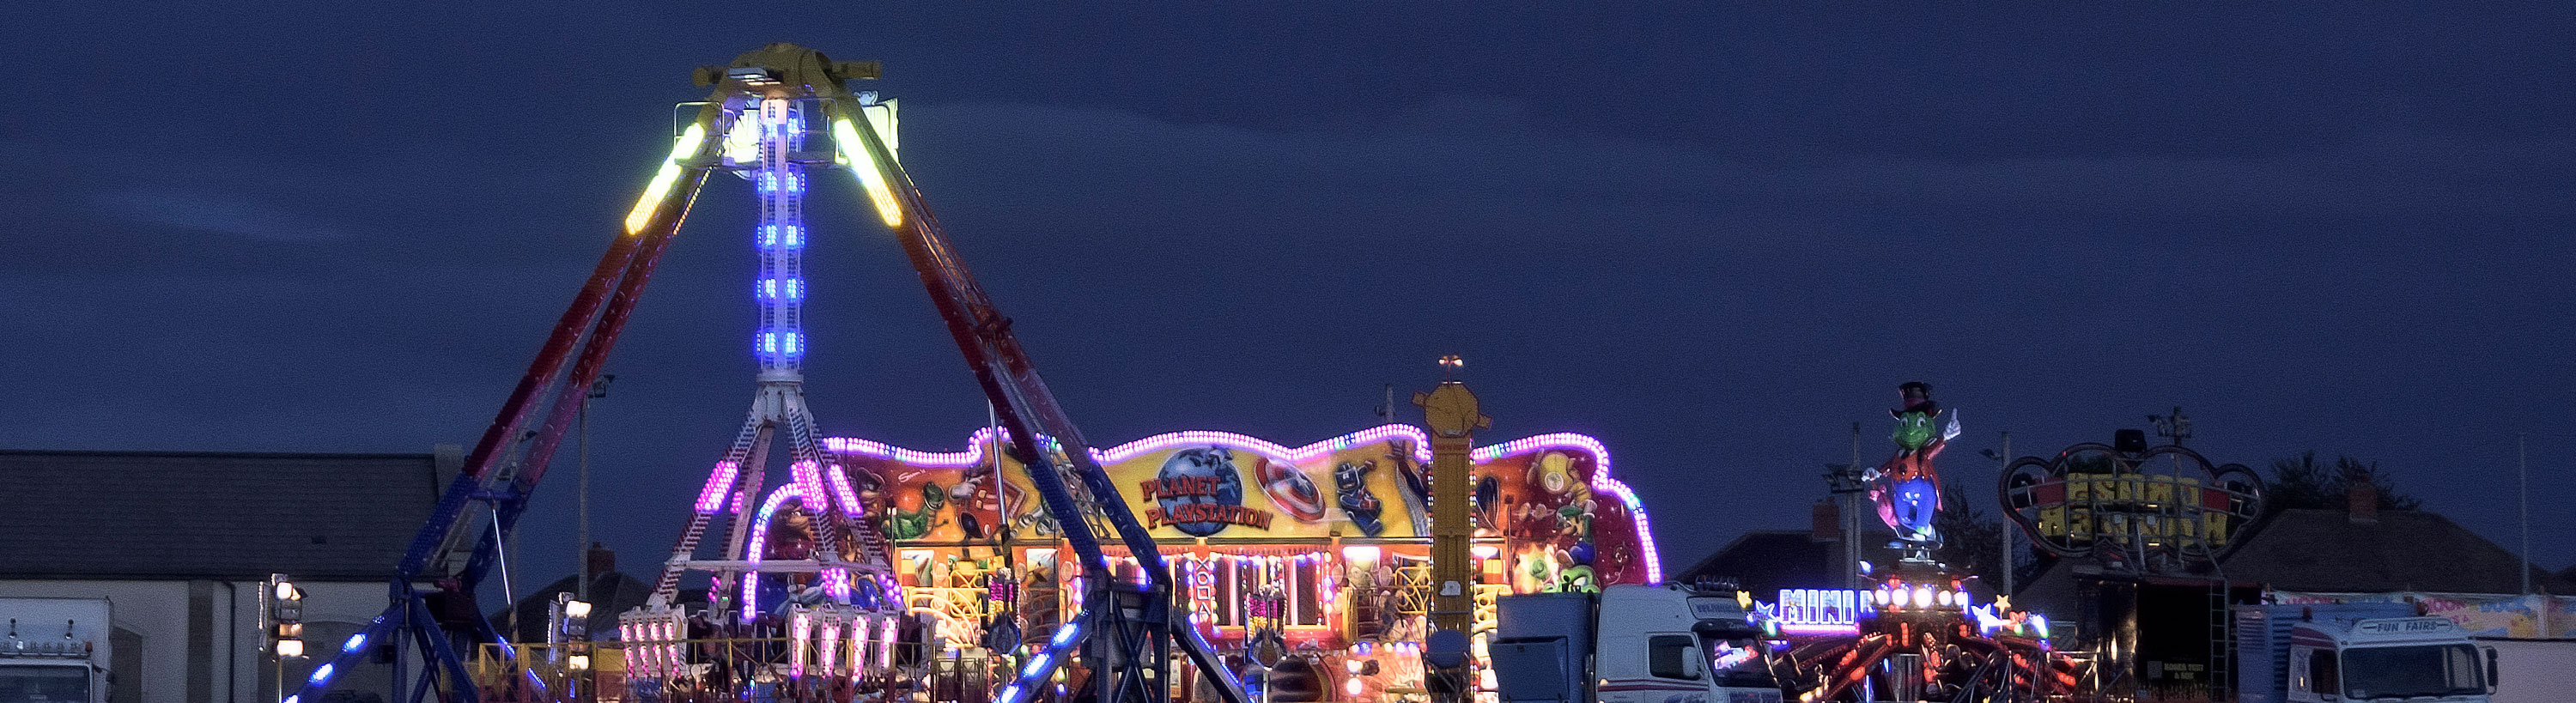 Funfair at Penistone Rec